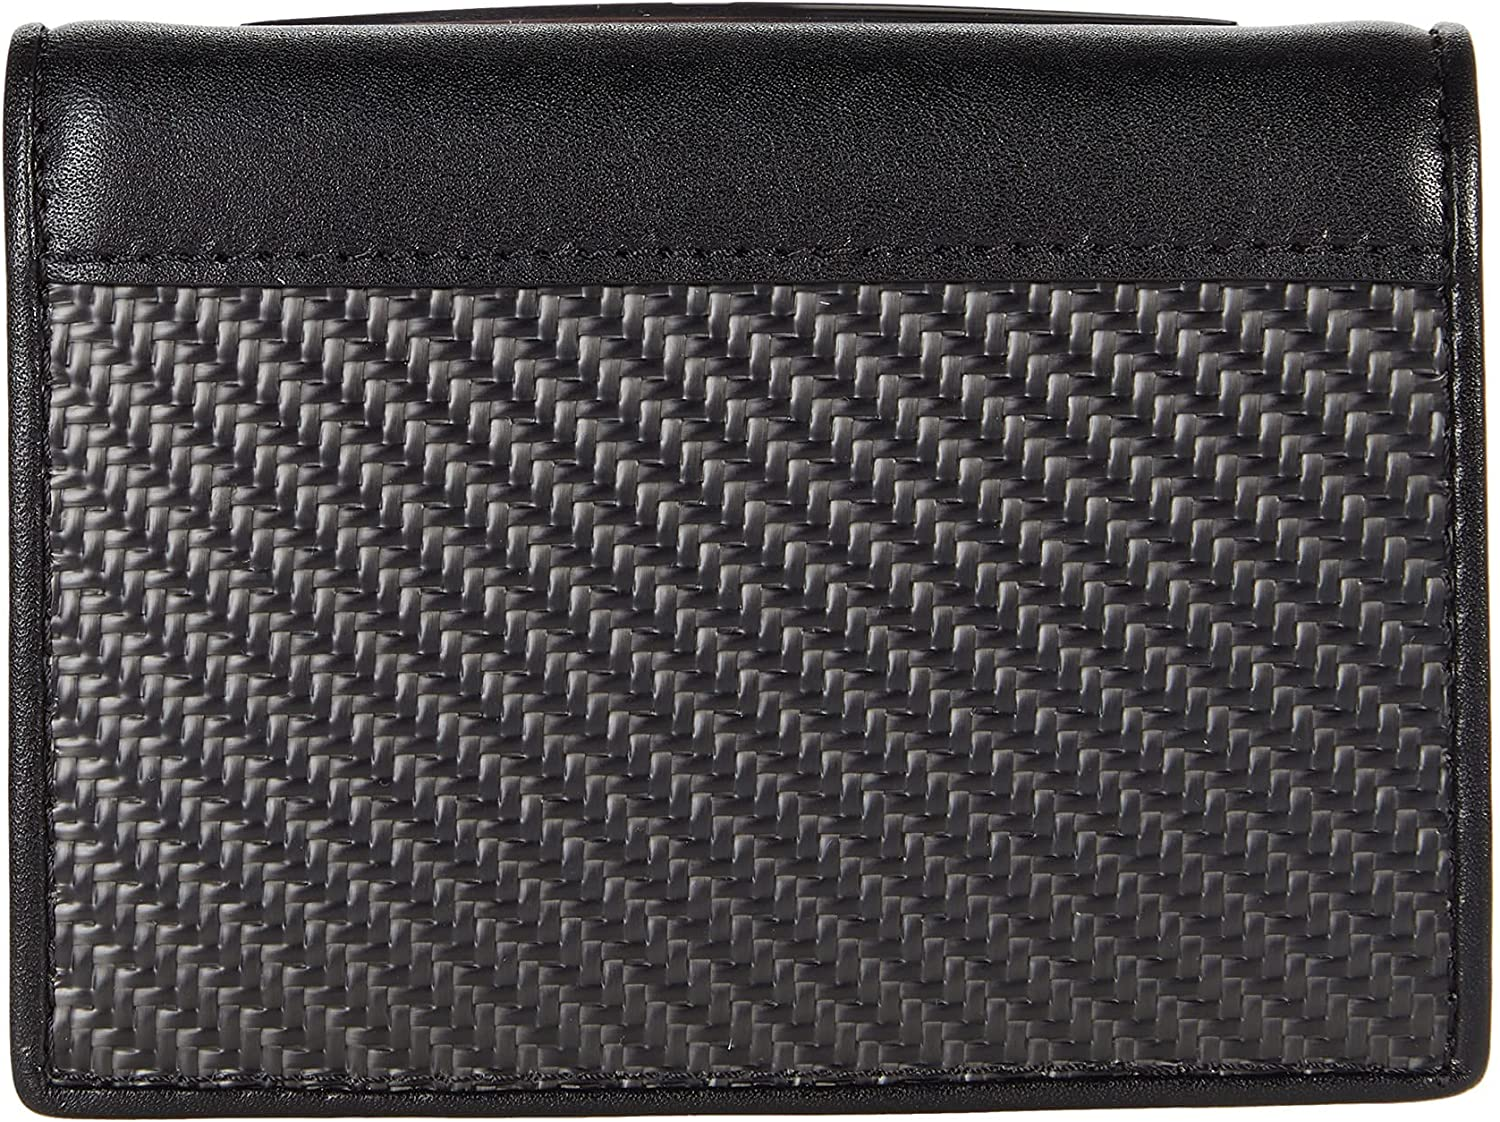 Tumi Donington Store Gussted Card Under blast sales One Size Carbon Case